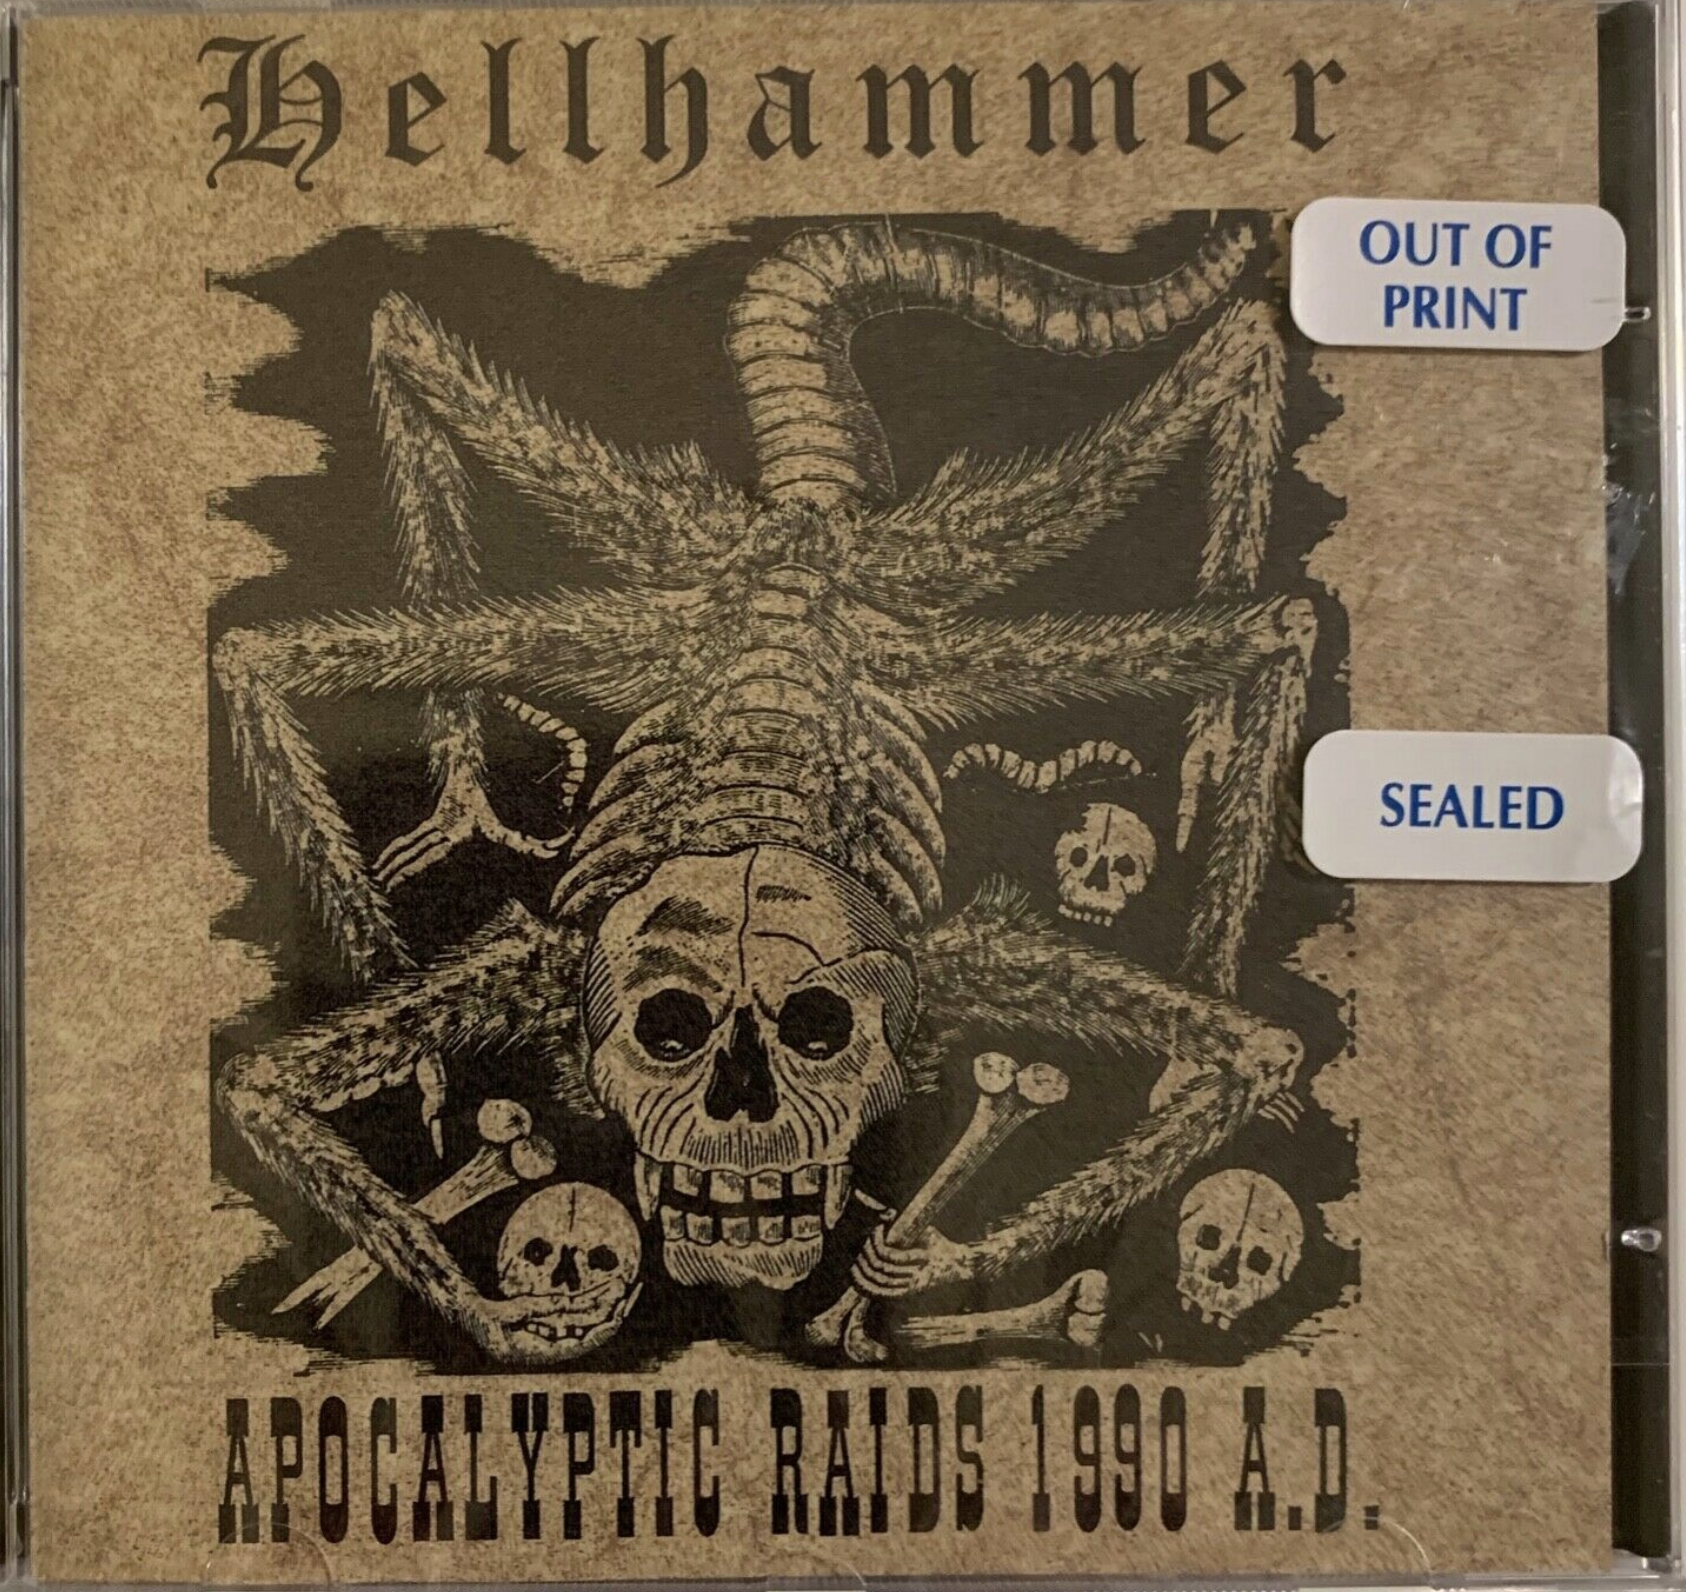 apocalyptic Raids hellhammer